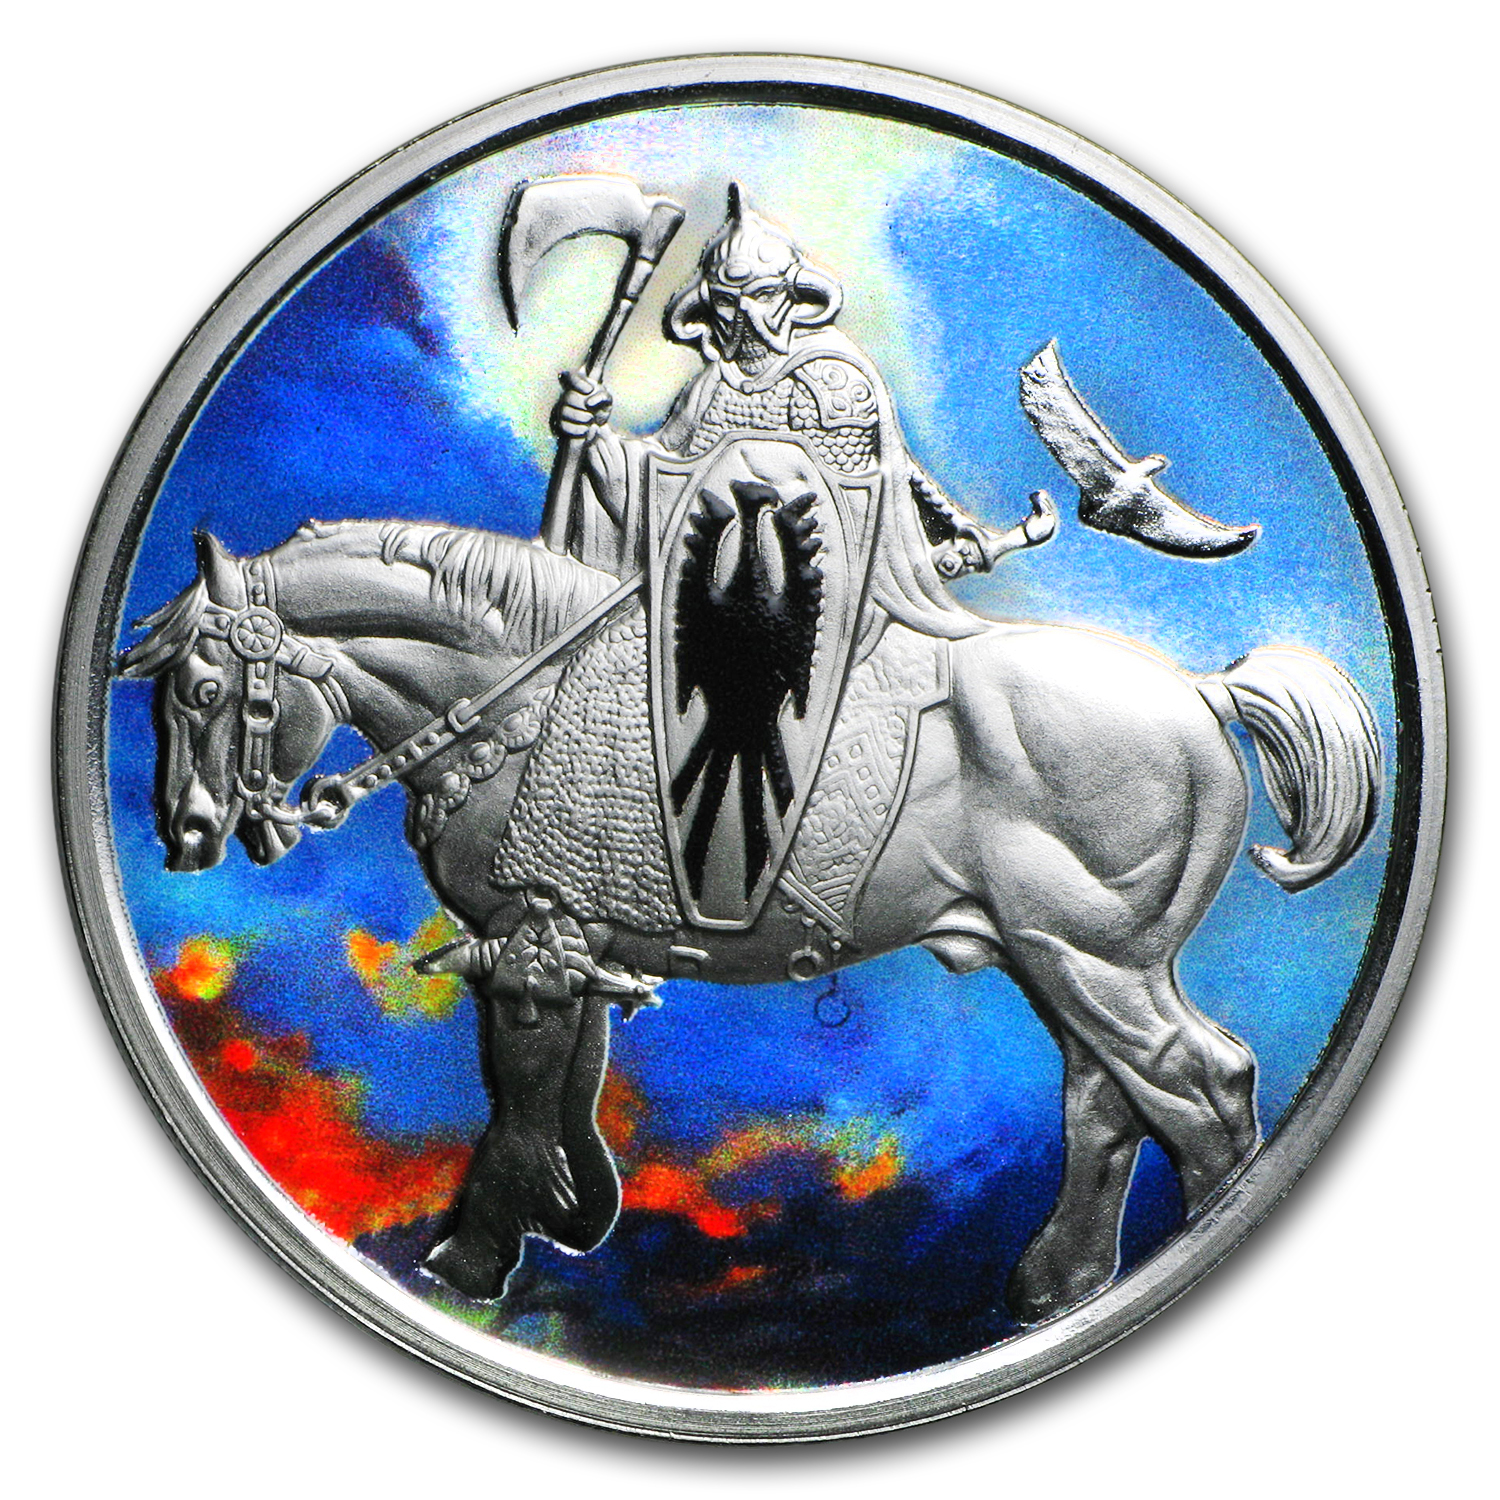 1 oz Silver Colorized Round - Frank Frazetta (Death Dealer)